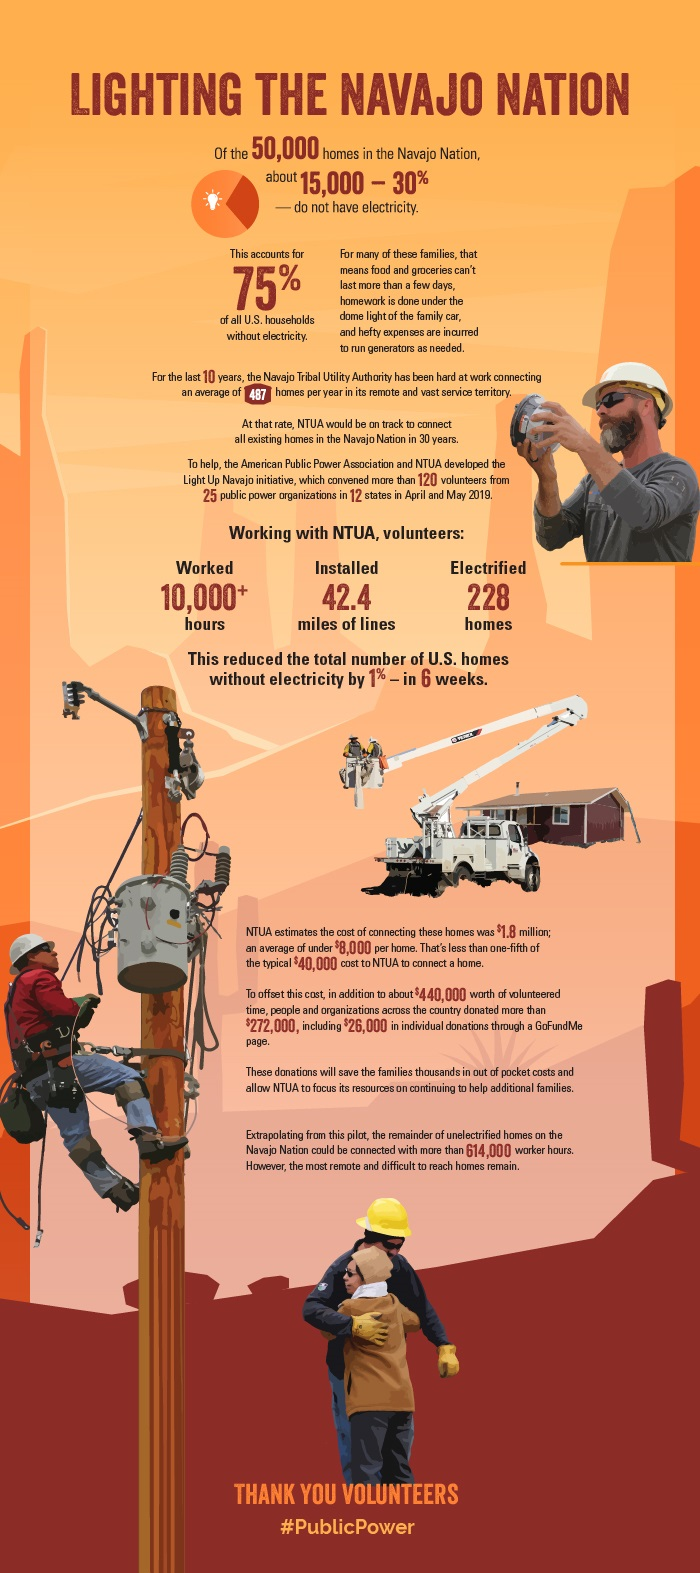 Stats about Light Up Navajo initiative in 2019